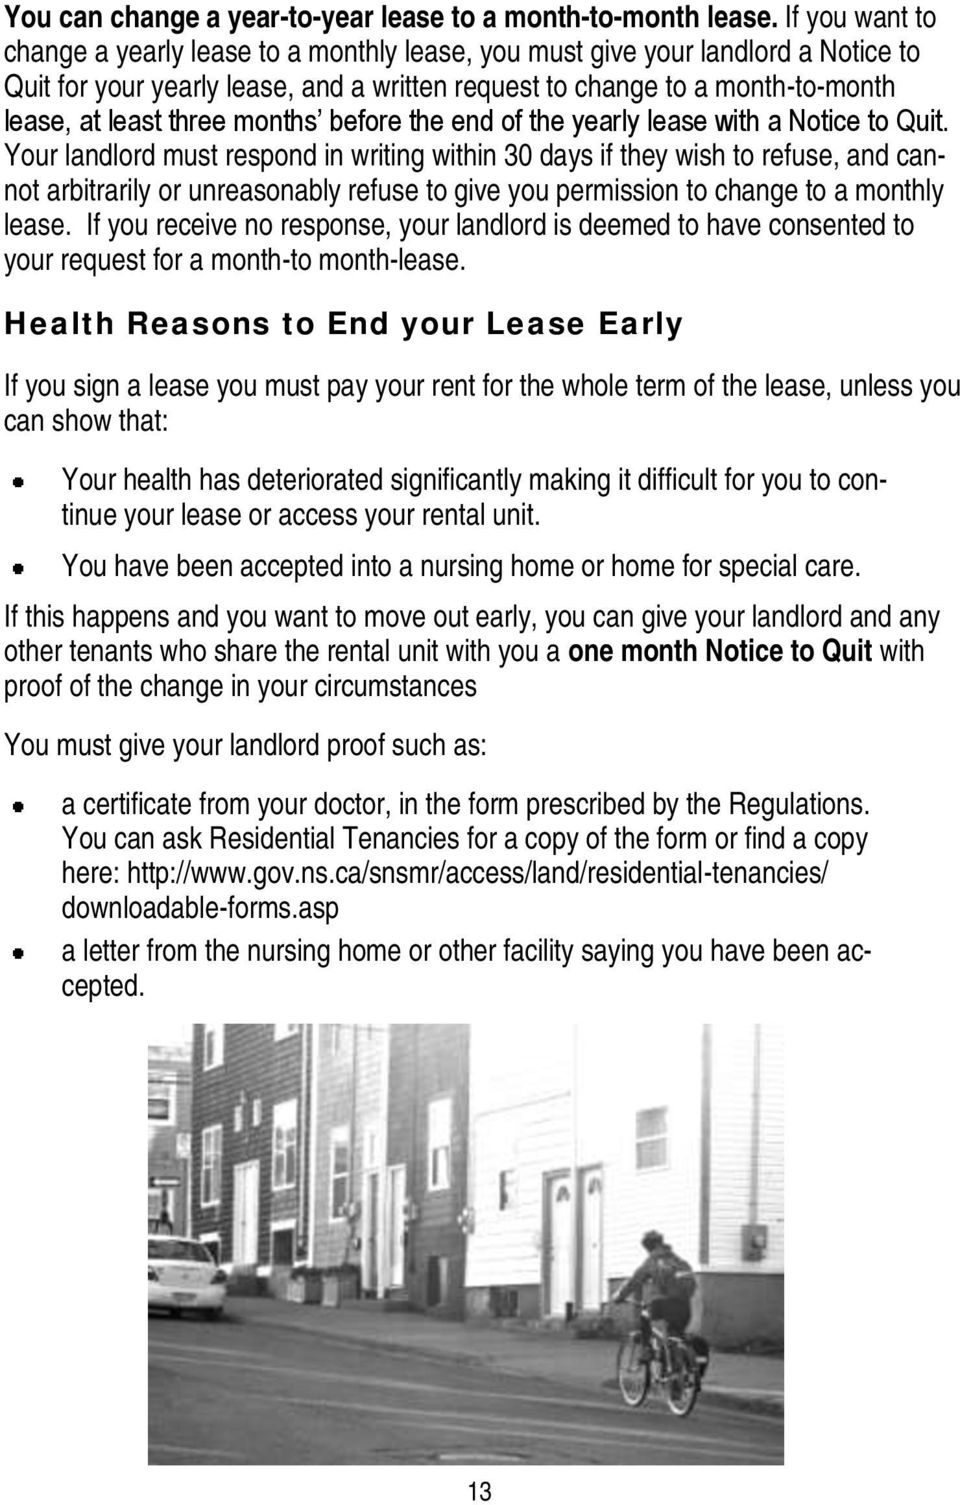 months before the end of the yearly lease with a Notice to Quit.